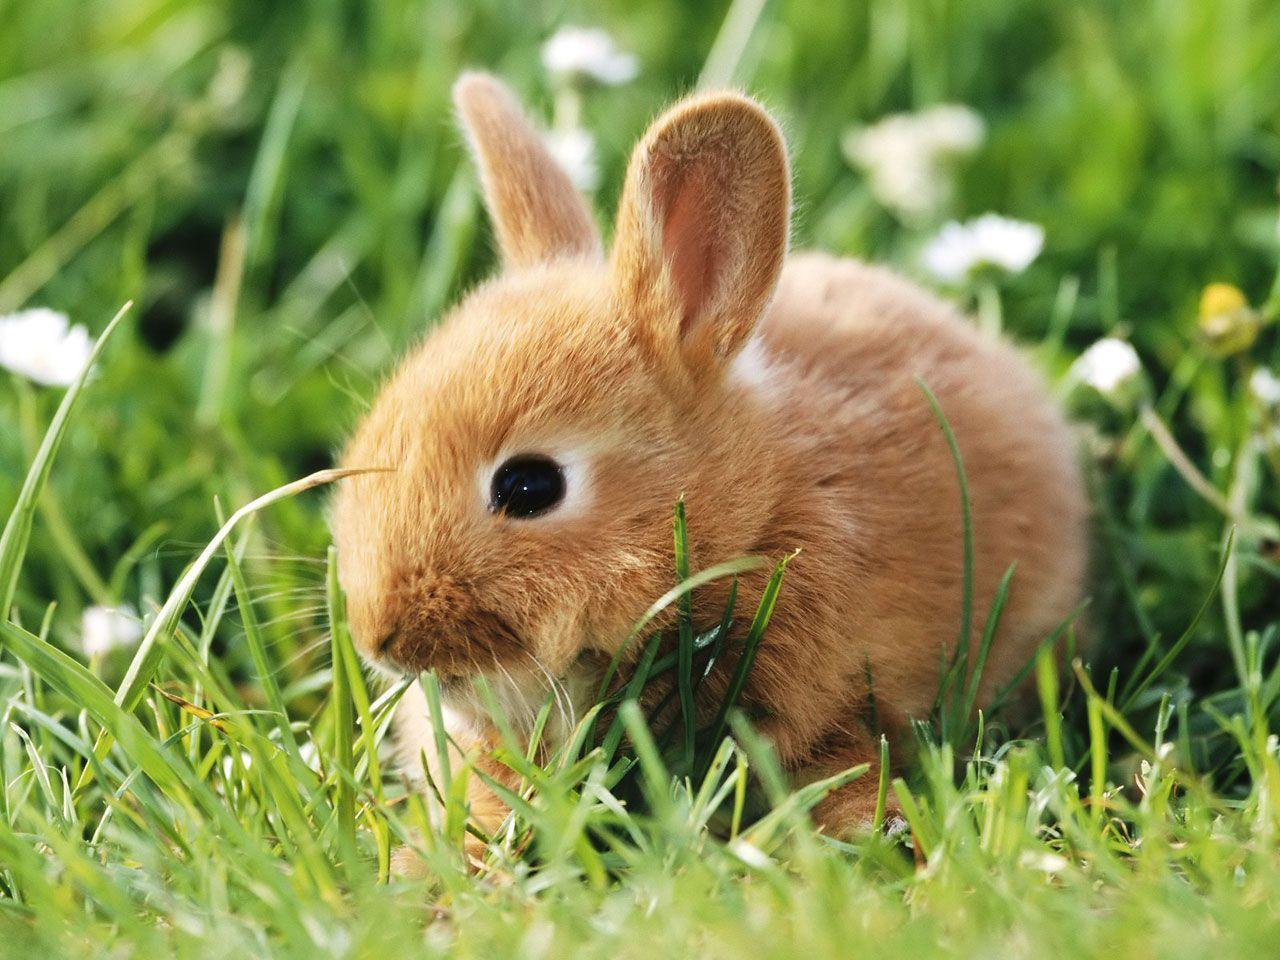 Cute Baby Bunny Wallpaper